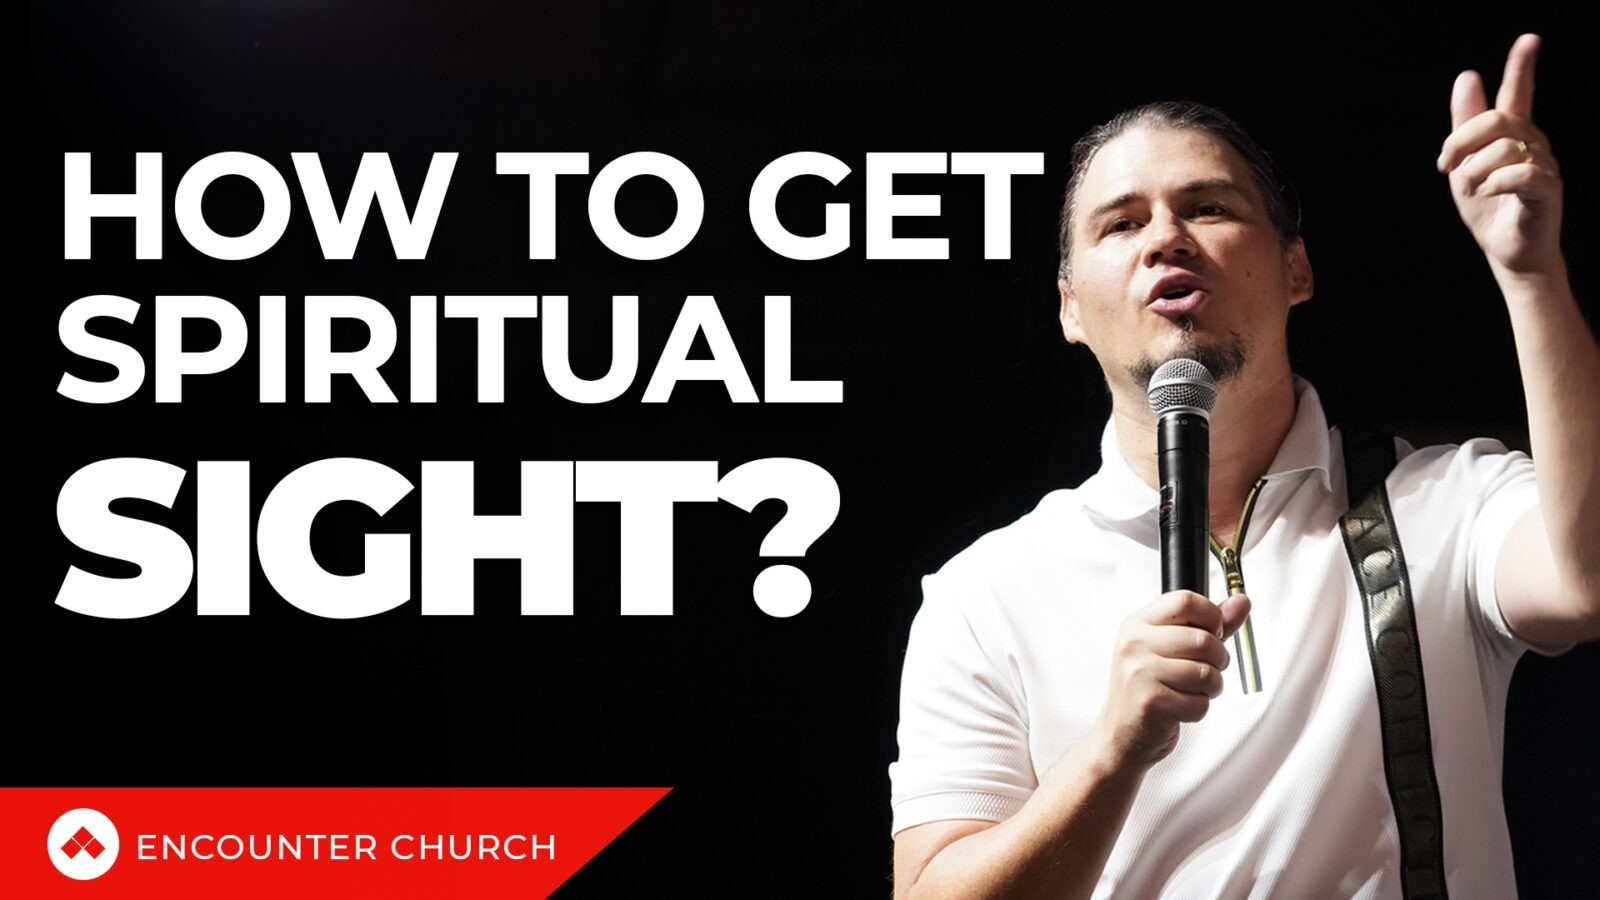 ENCOUNTER CONFERENCE – How To Get Spiritual Sight?